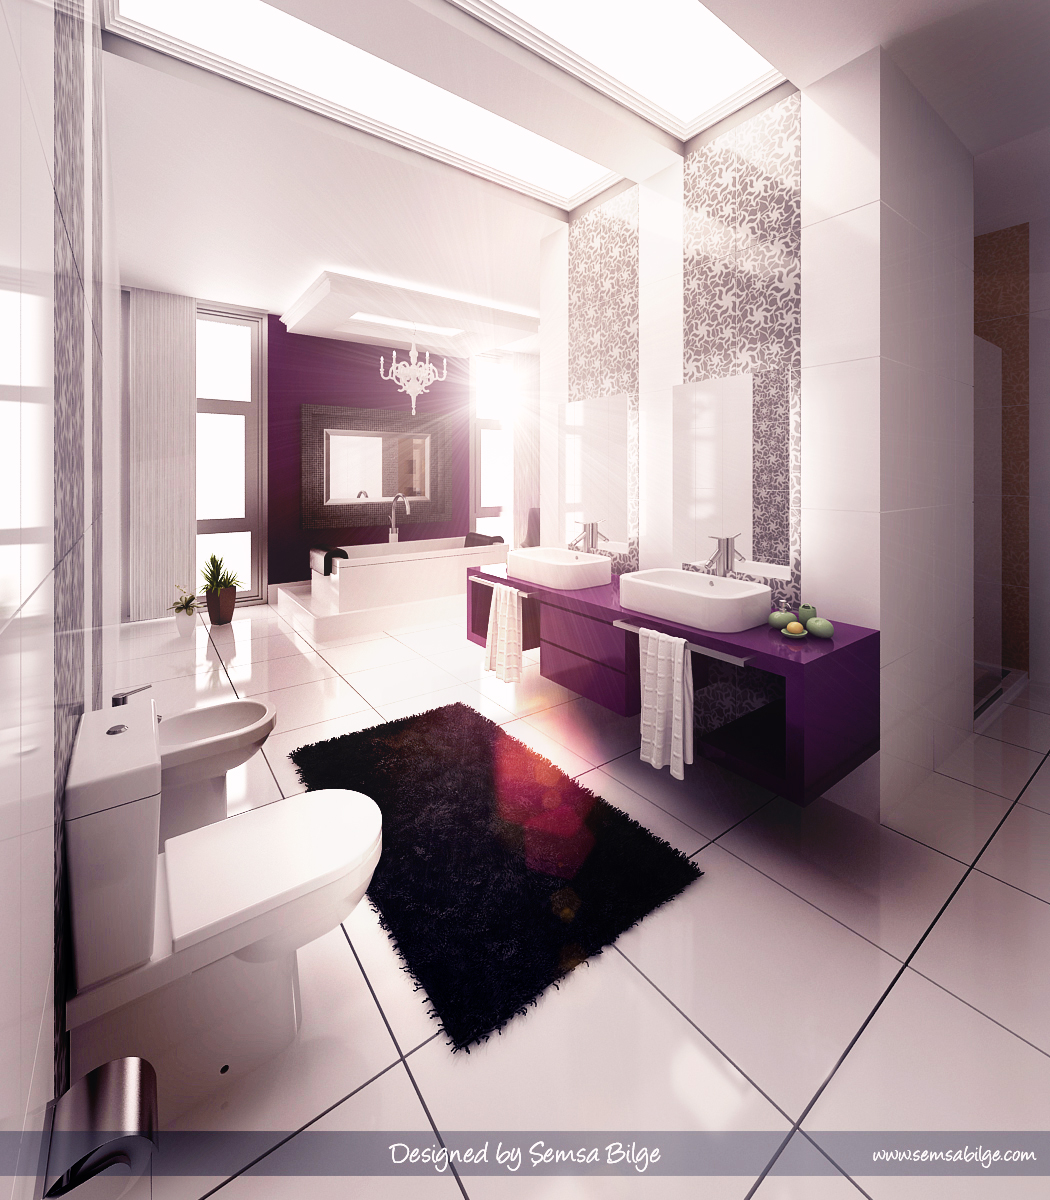 Beautiful bathroom designs ideas interior design for Beautiful bathroom designs